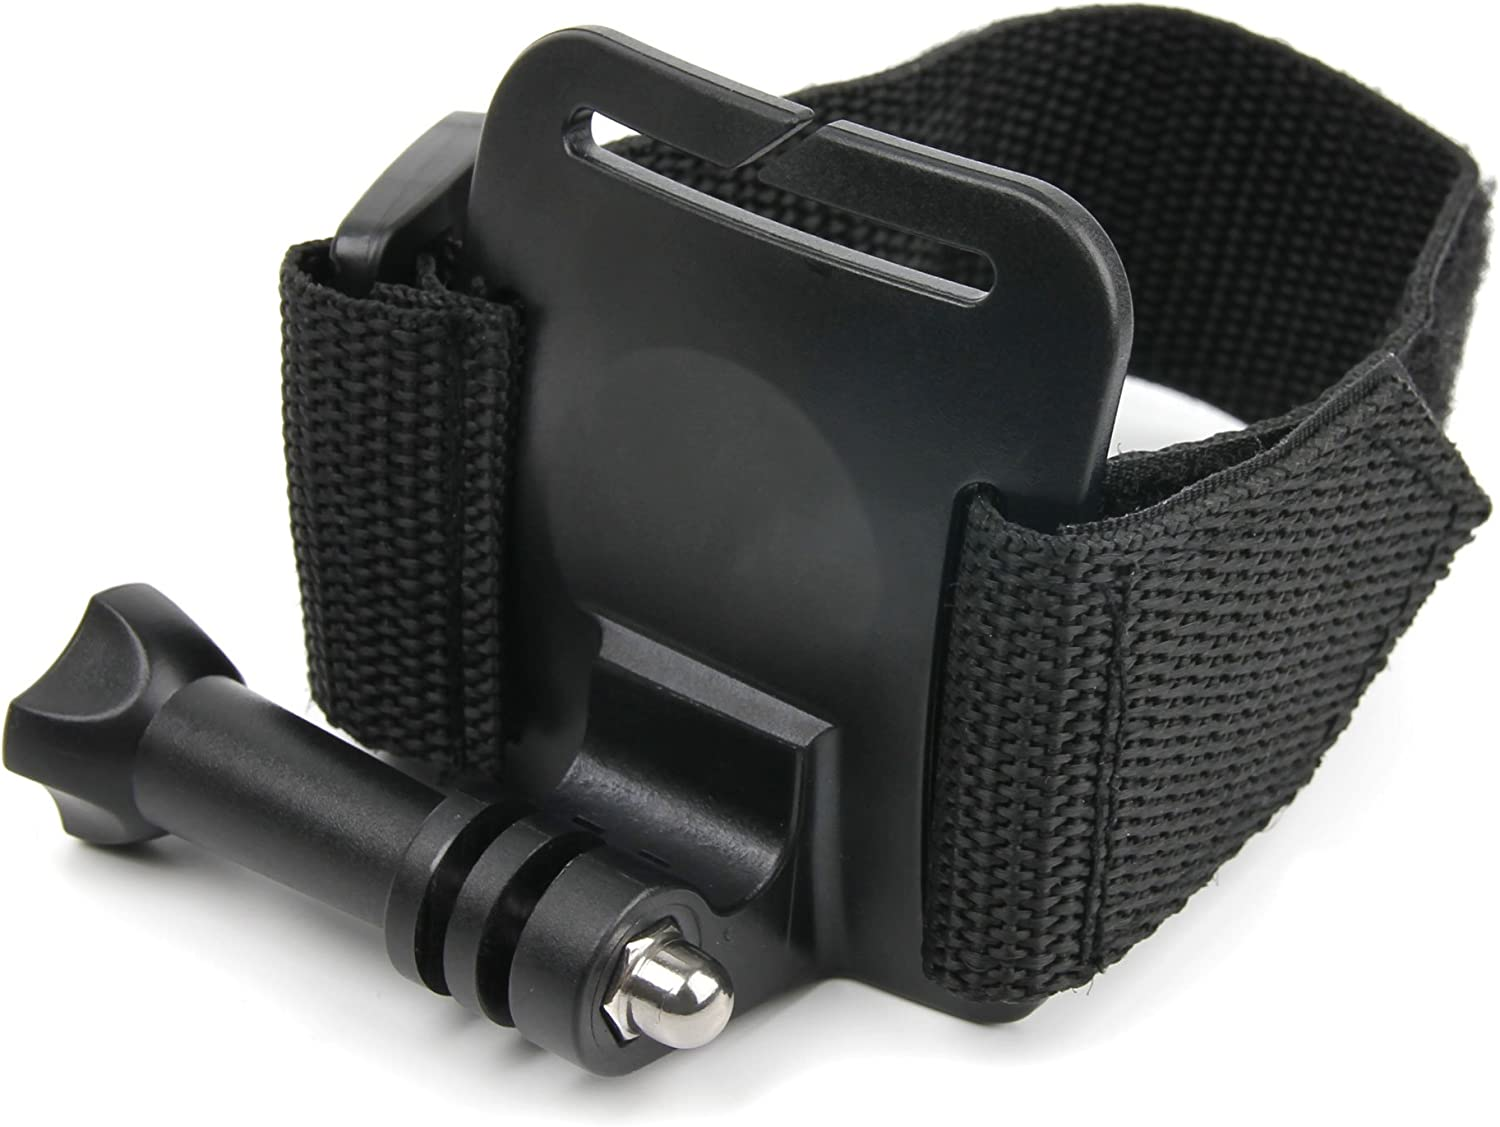 Compatible with Ricoh WG-M1 DURAGADGET Adjustable Wrist Strap Mount